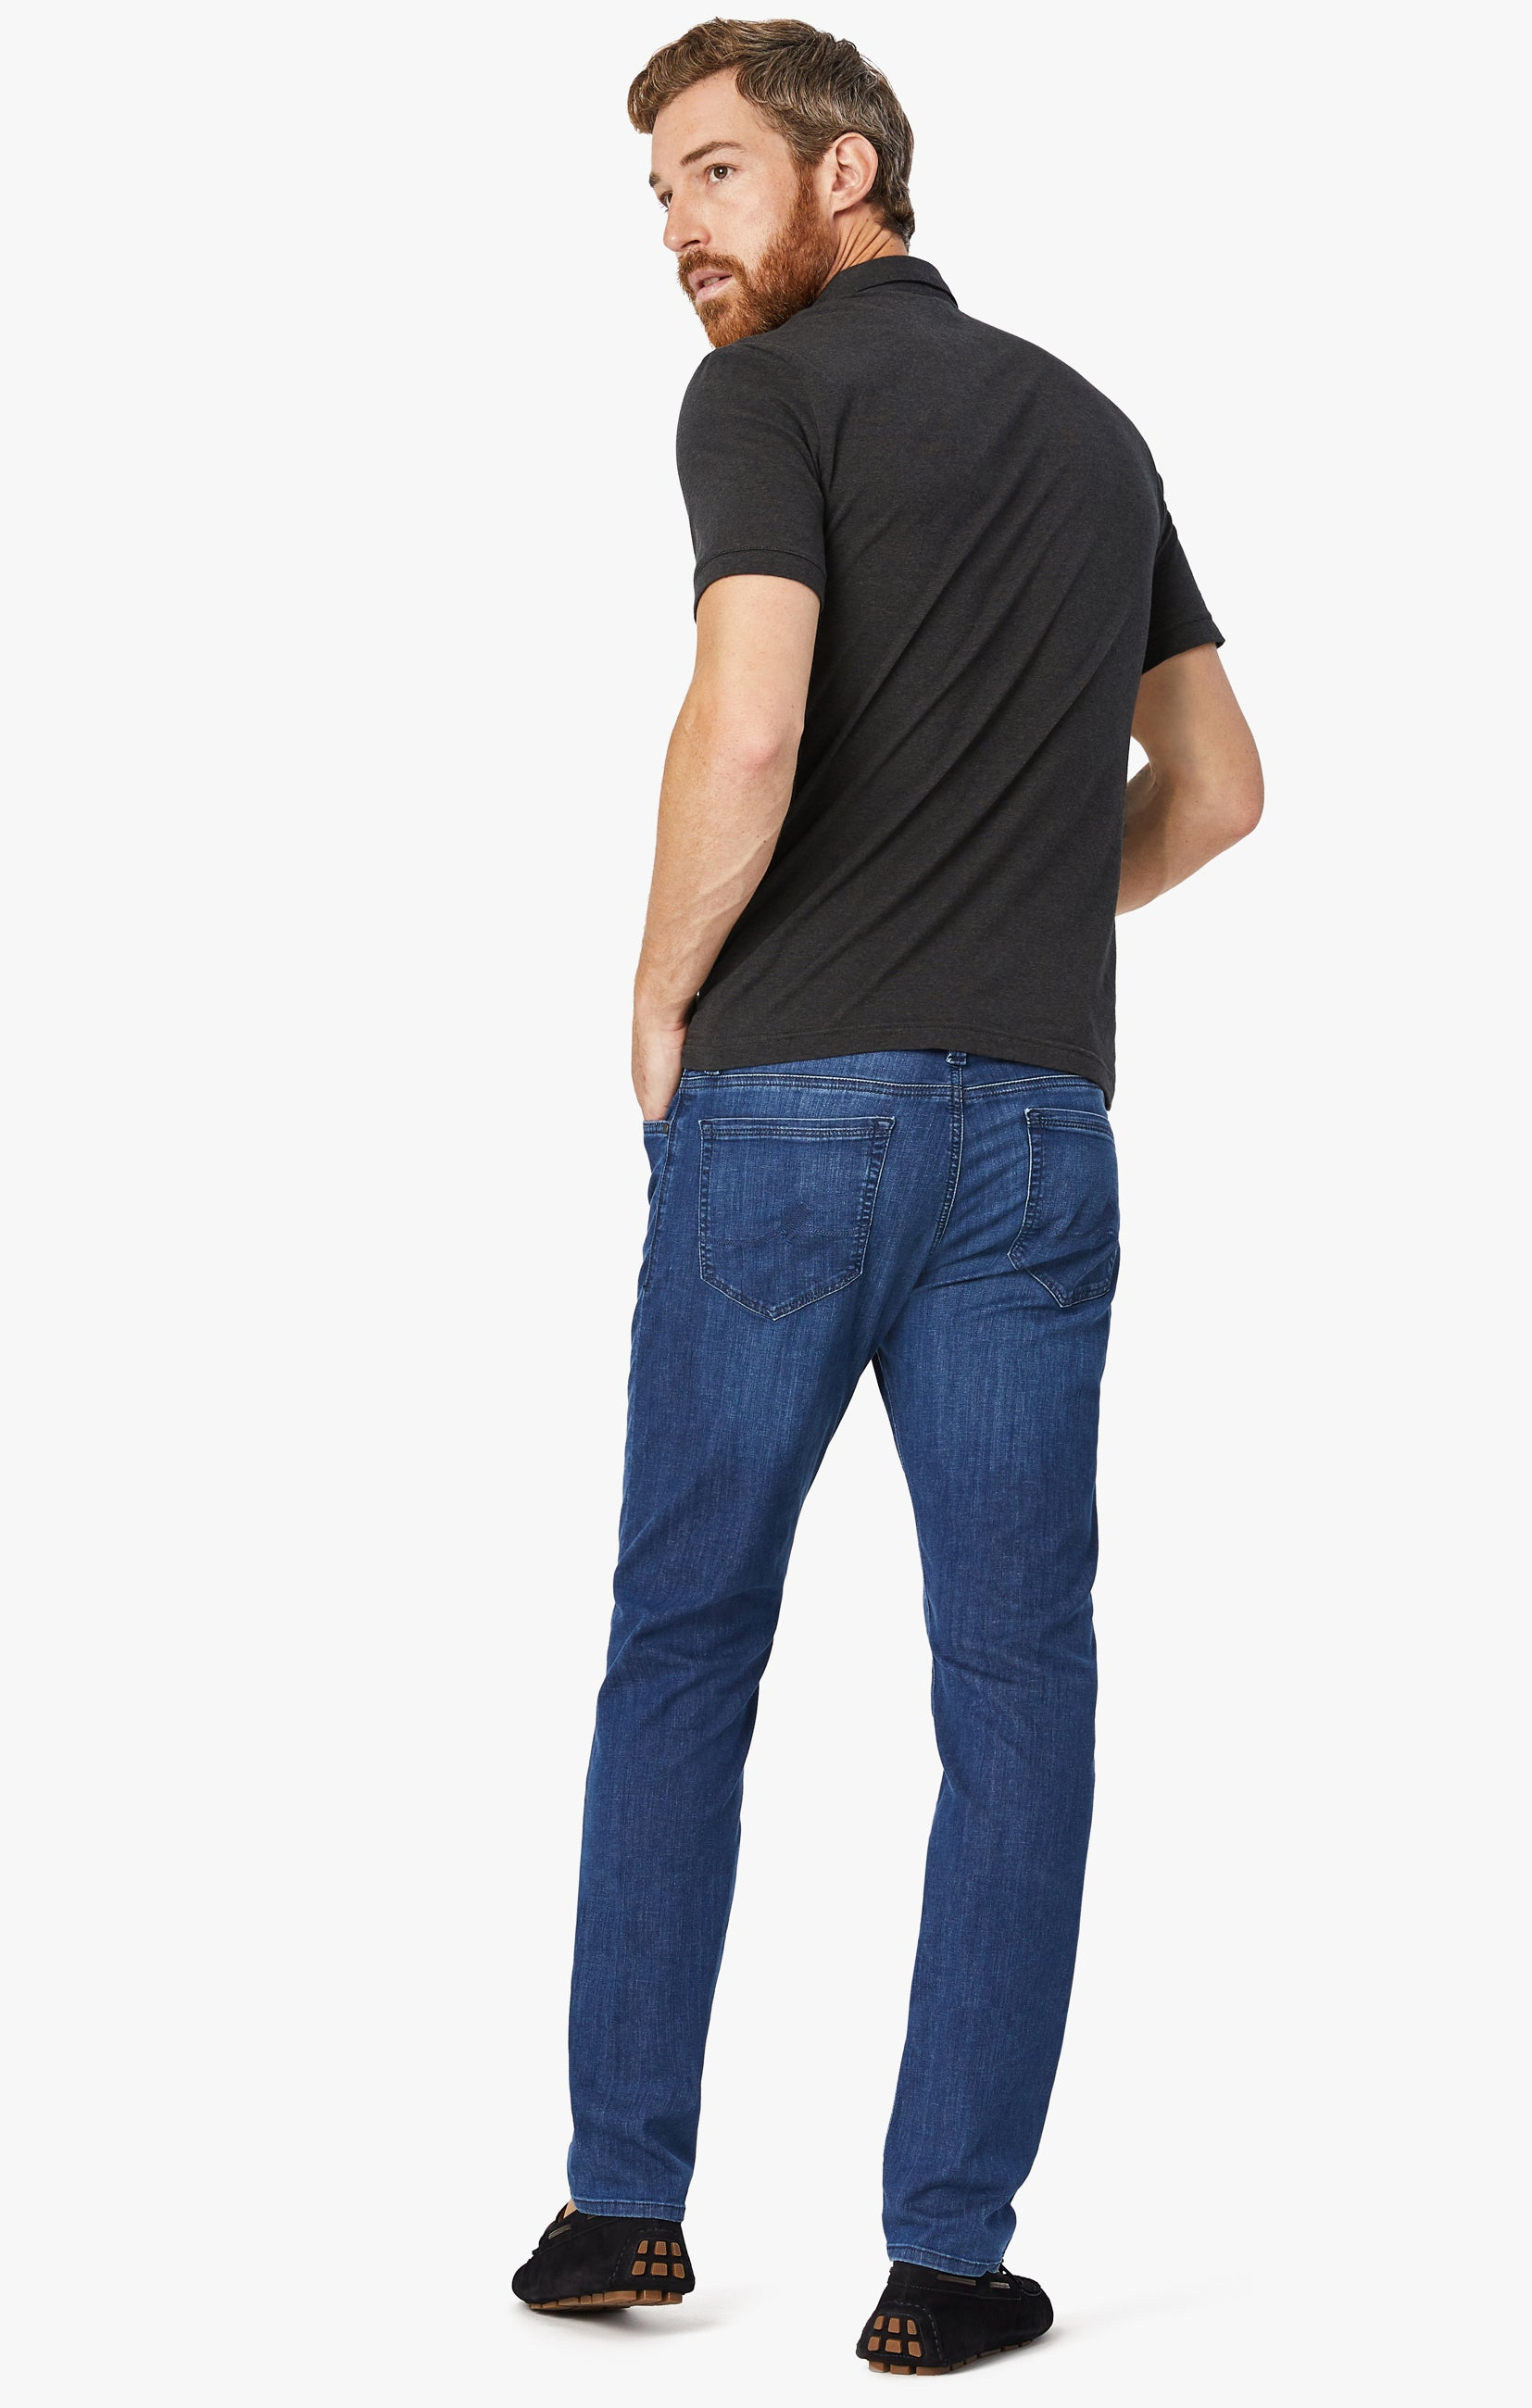 Cool Tapered Leg Jeans In Mid Kona Image 2